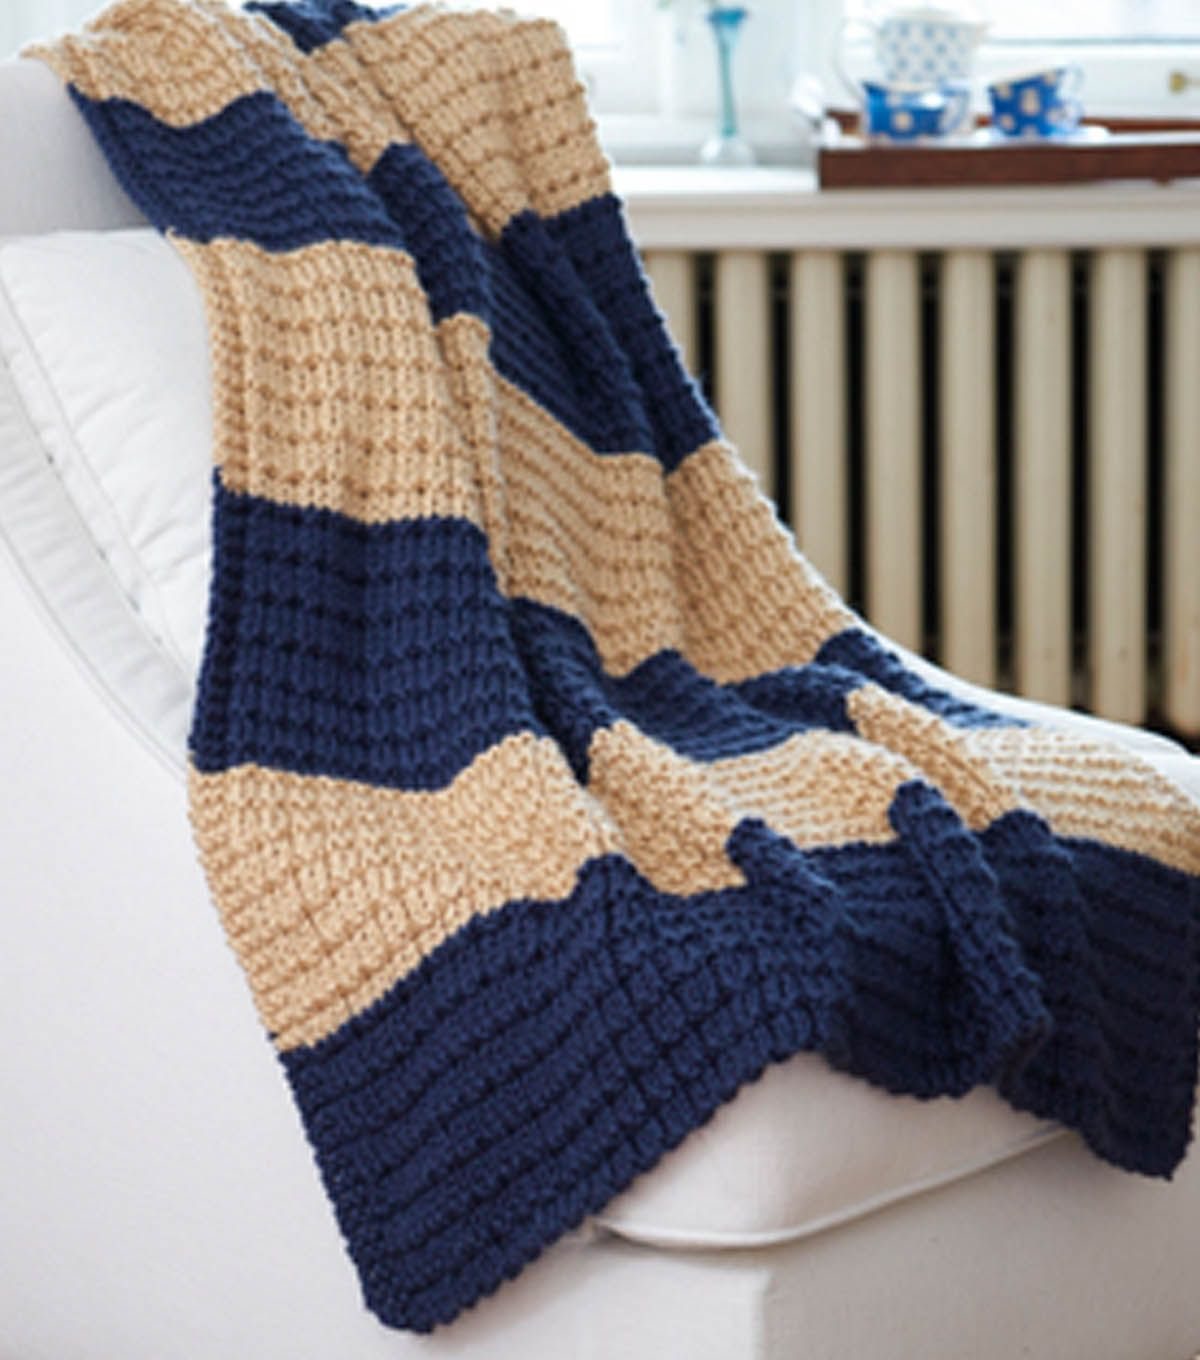 Easy breezy afghaneasy breezy afghan afghans knit pinterest easy breezy afghaneasy breezy afghan bankloansurffo Image collections